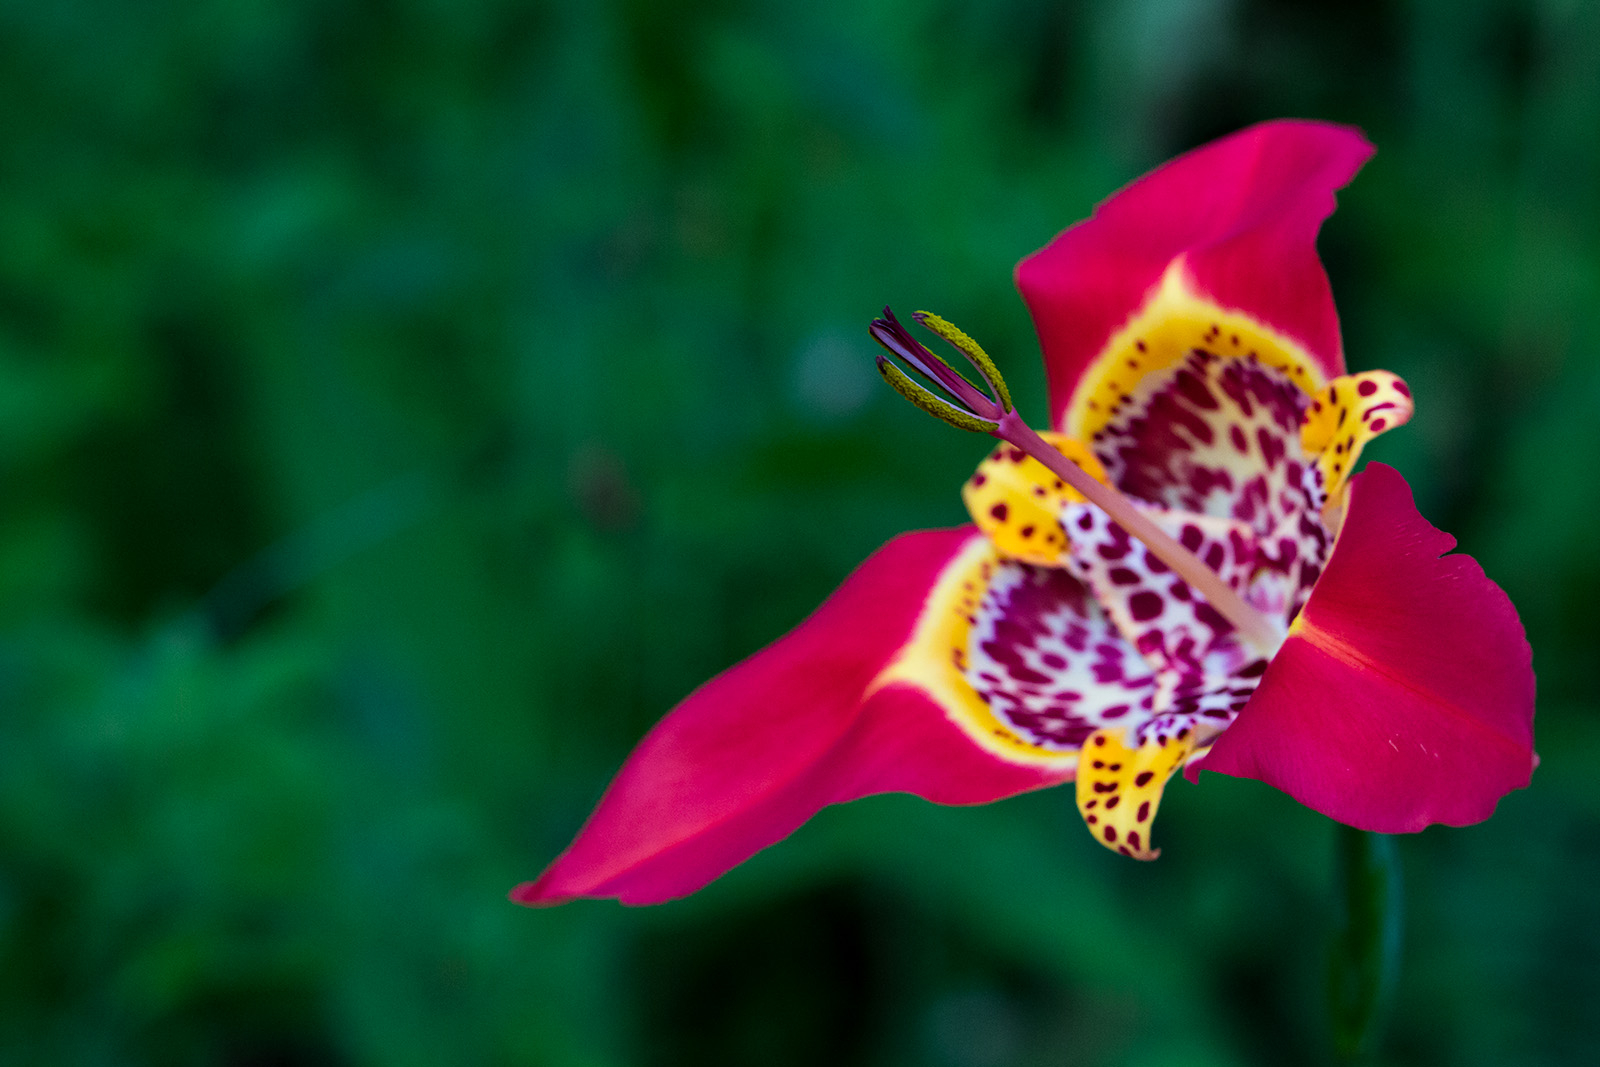 A different perspective on the flower of Tigridia pavonia